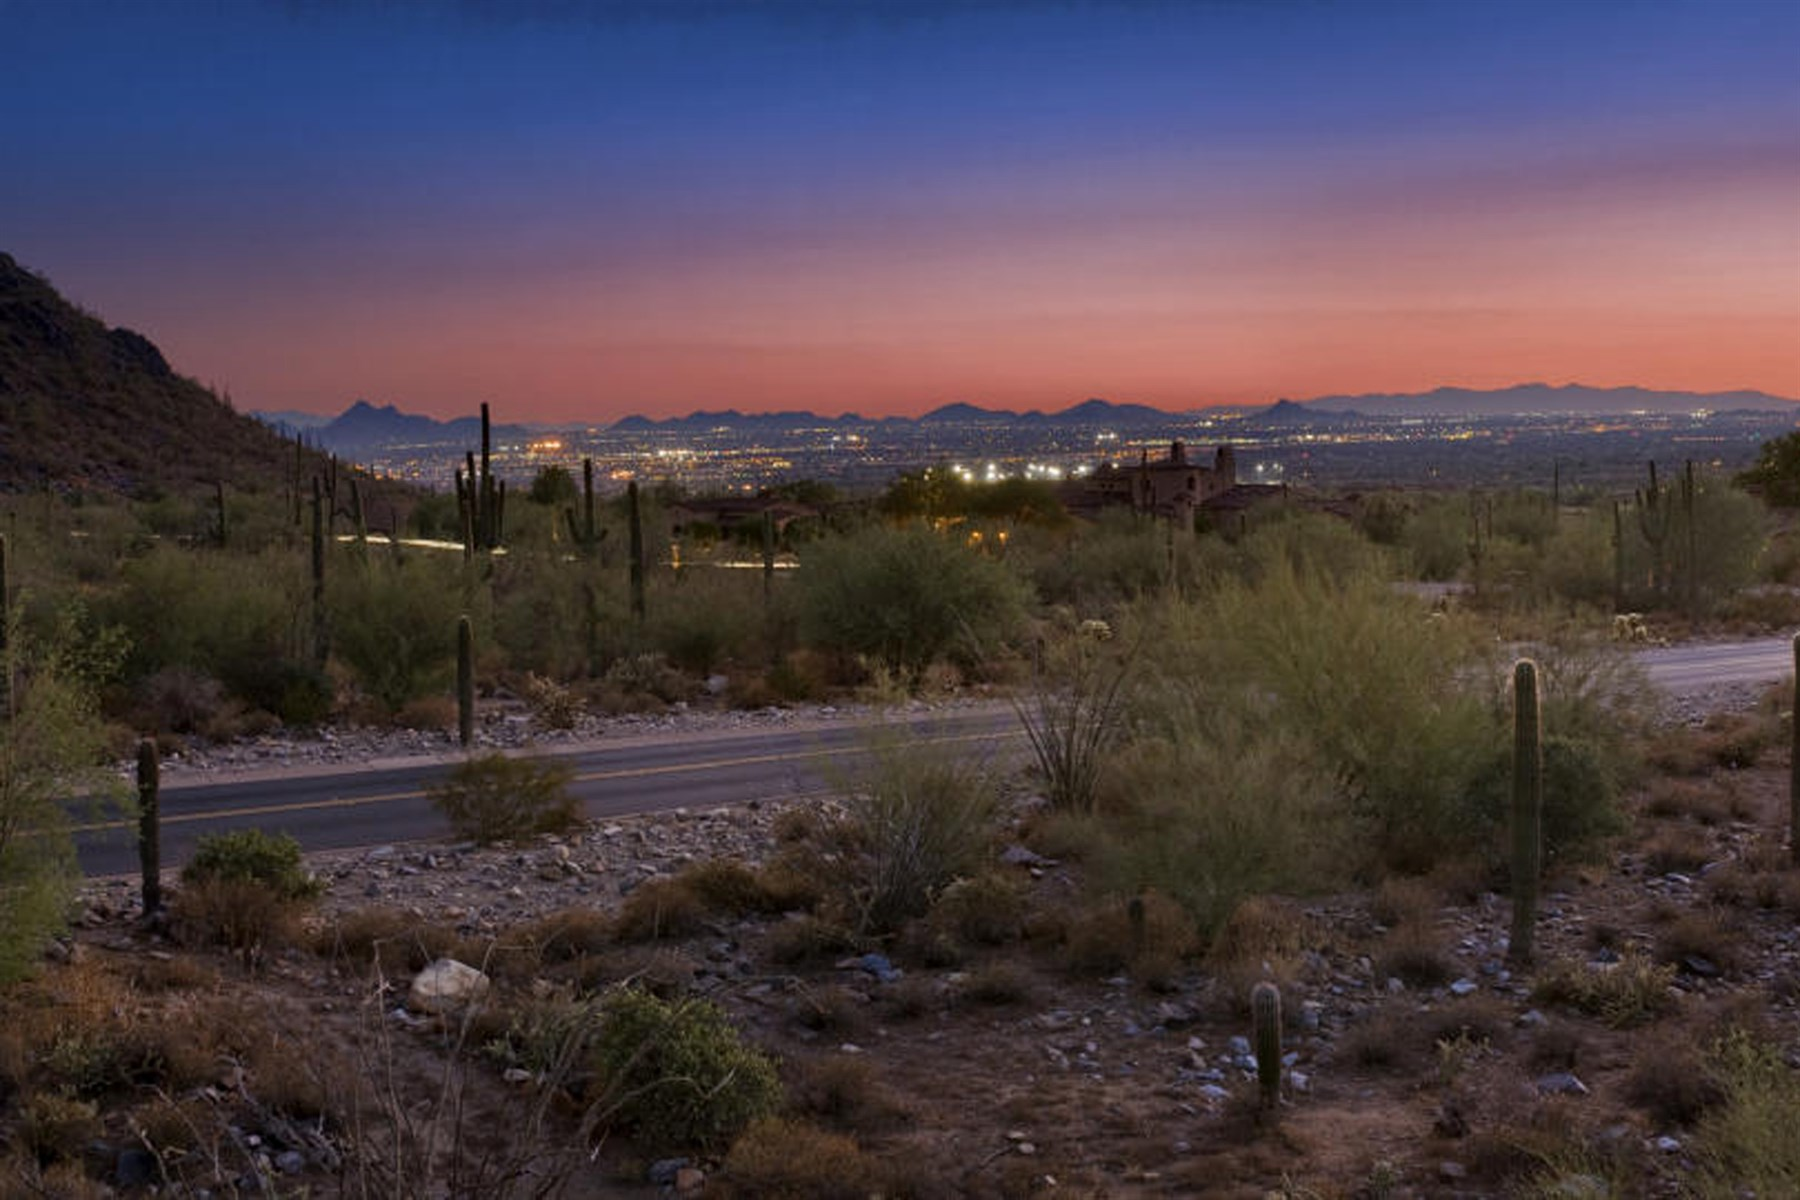 Land for Sale at Large Upper Canyon homesite with sweeping views 10856 E WINDGATE PASS DR #1534 Scottsdale, Arizona 85255 United States